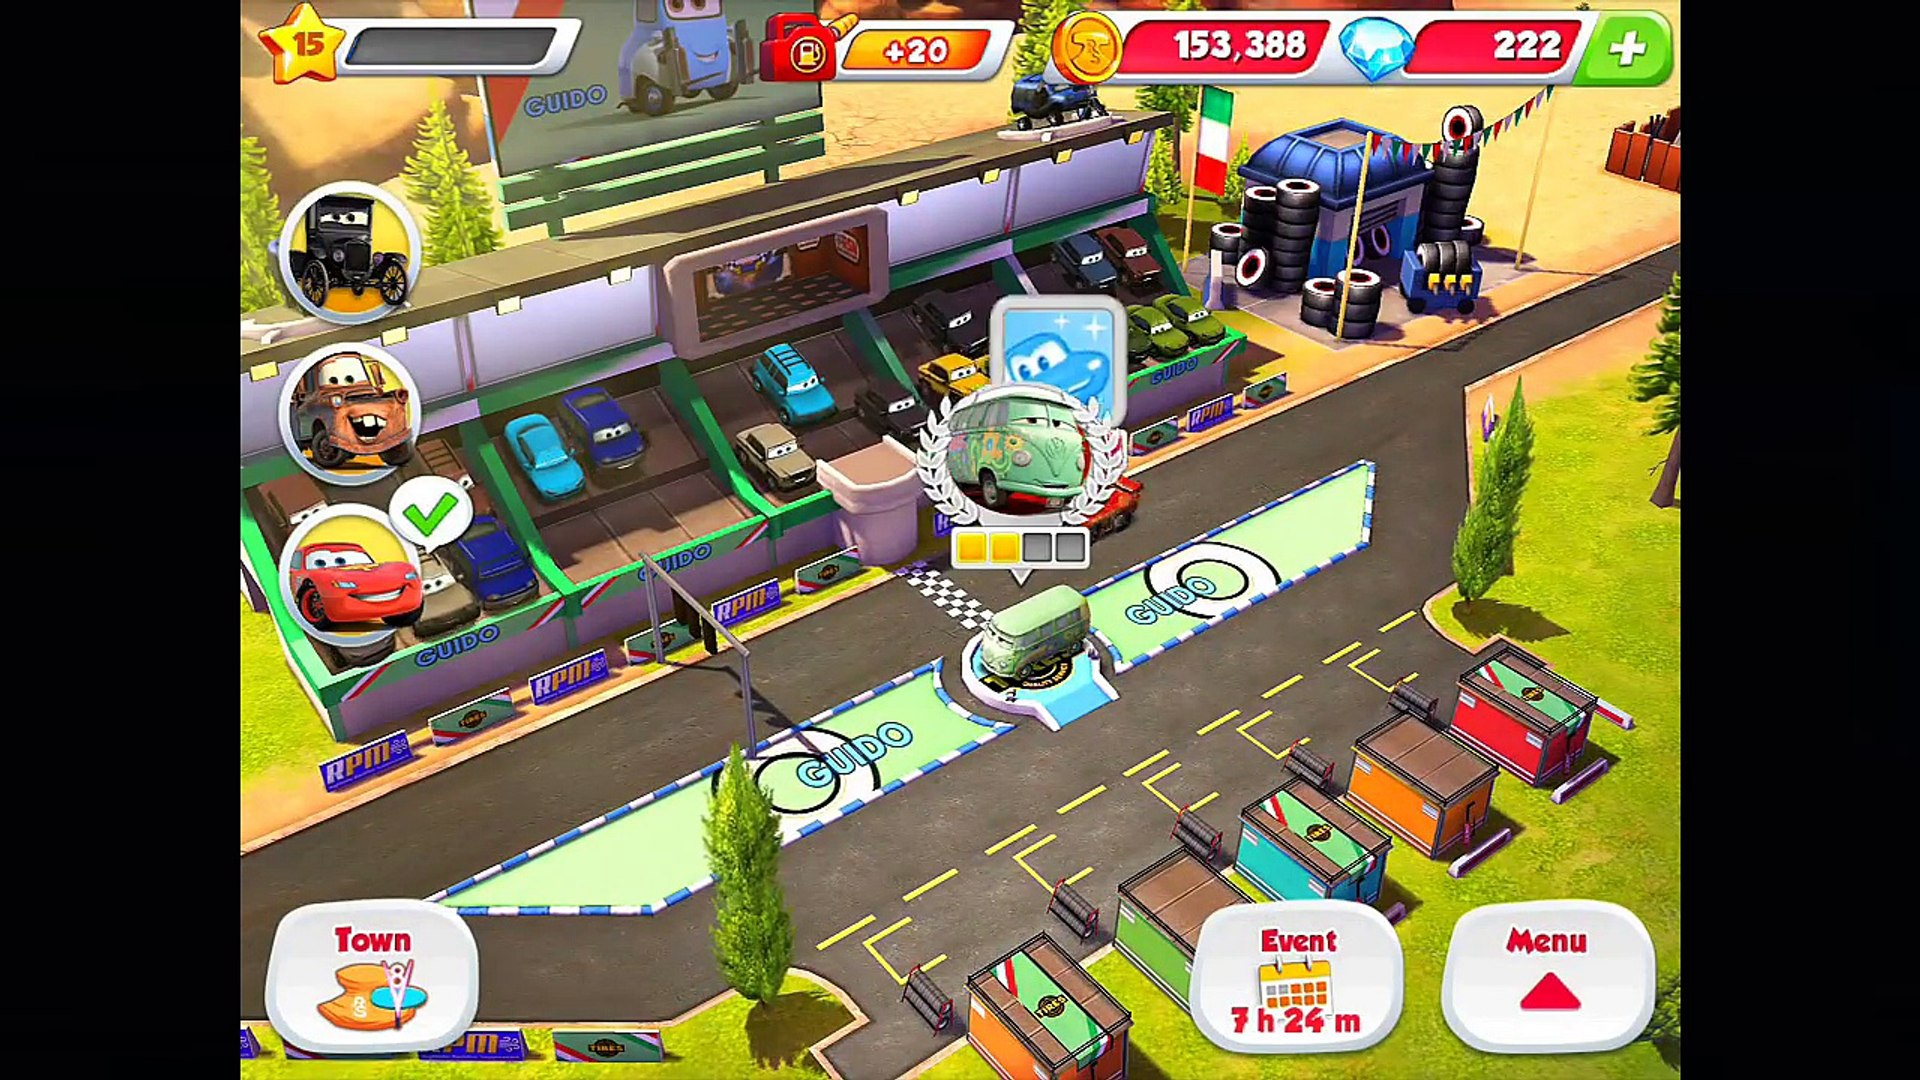 GUIDO! Level 07 - CARS: Fast as Lightning